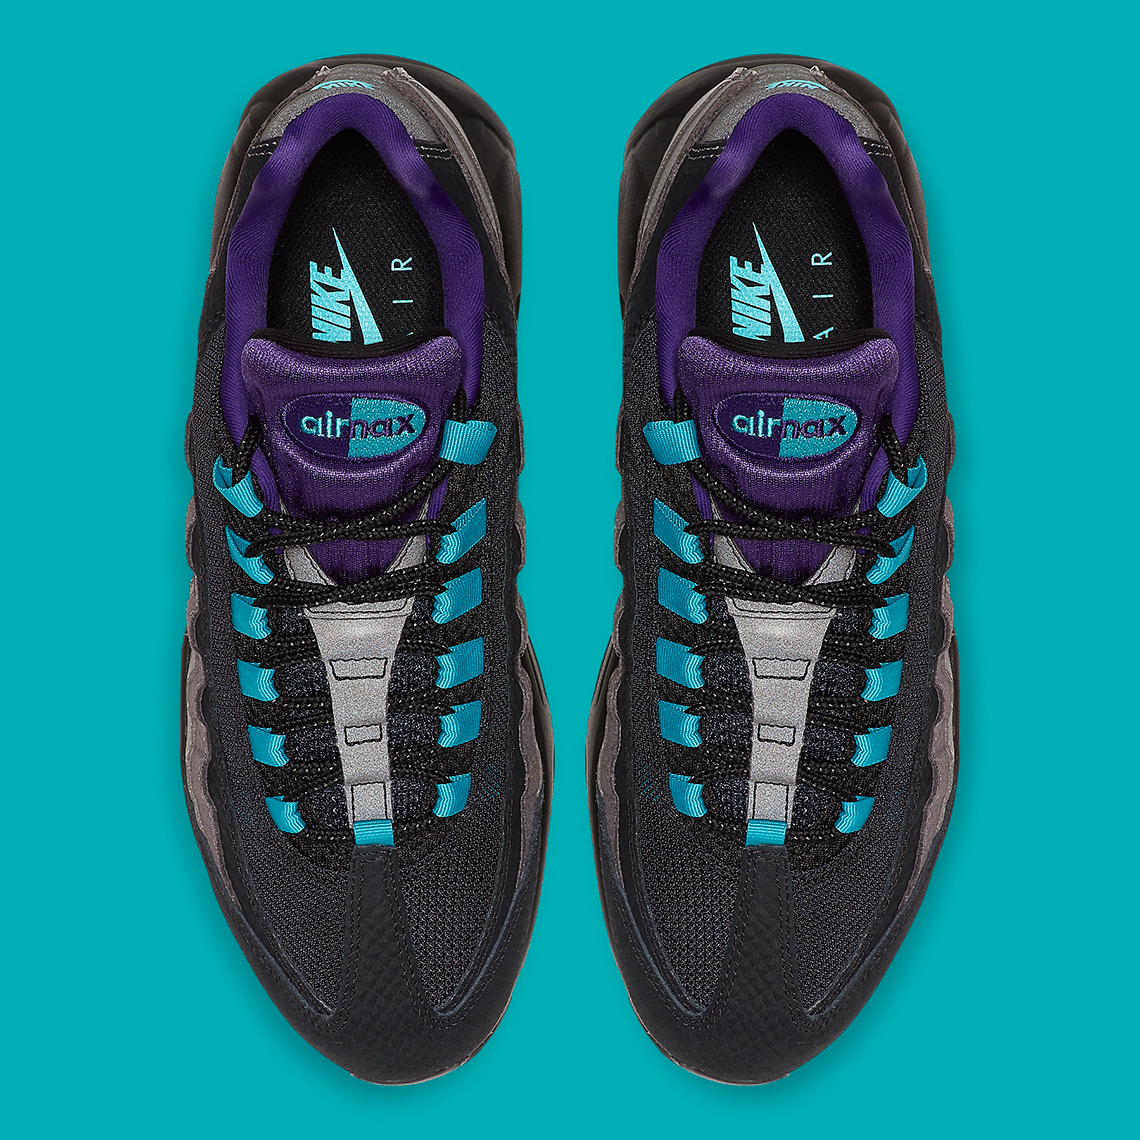 Nike Air Max 95 Black Court Purple Teal Nebula AO2450 002